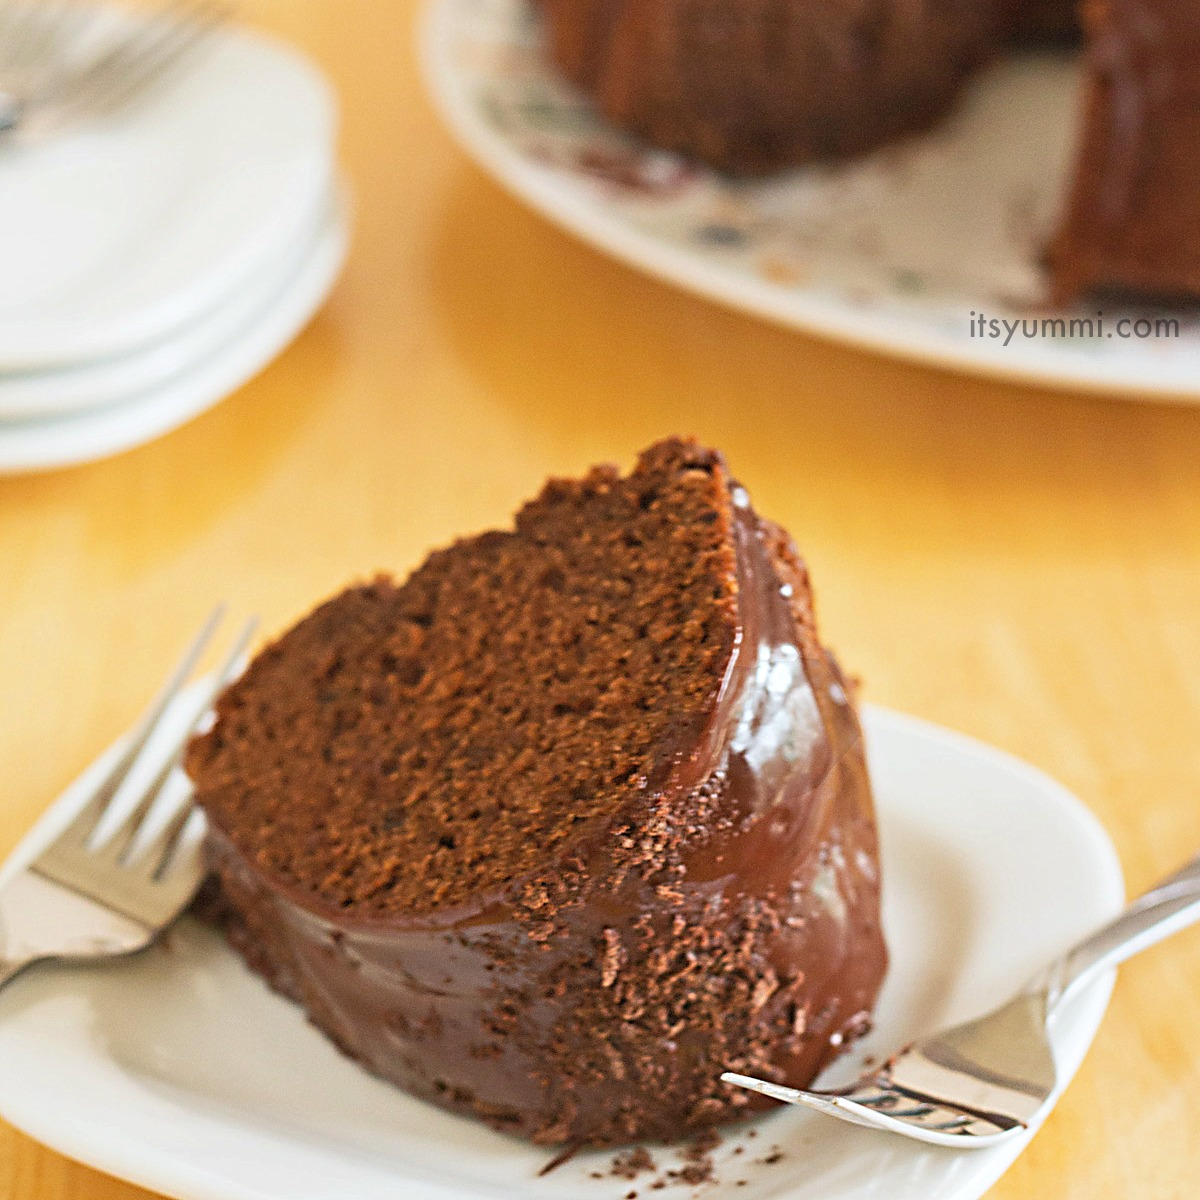 Double Chocolate Bundt Cake Recipe, from ItsYummi.com